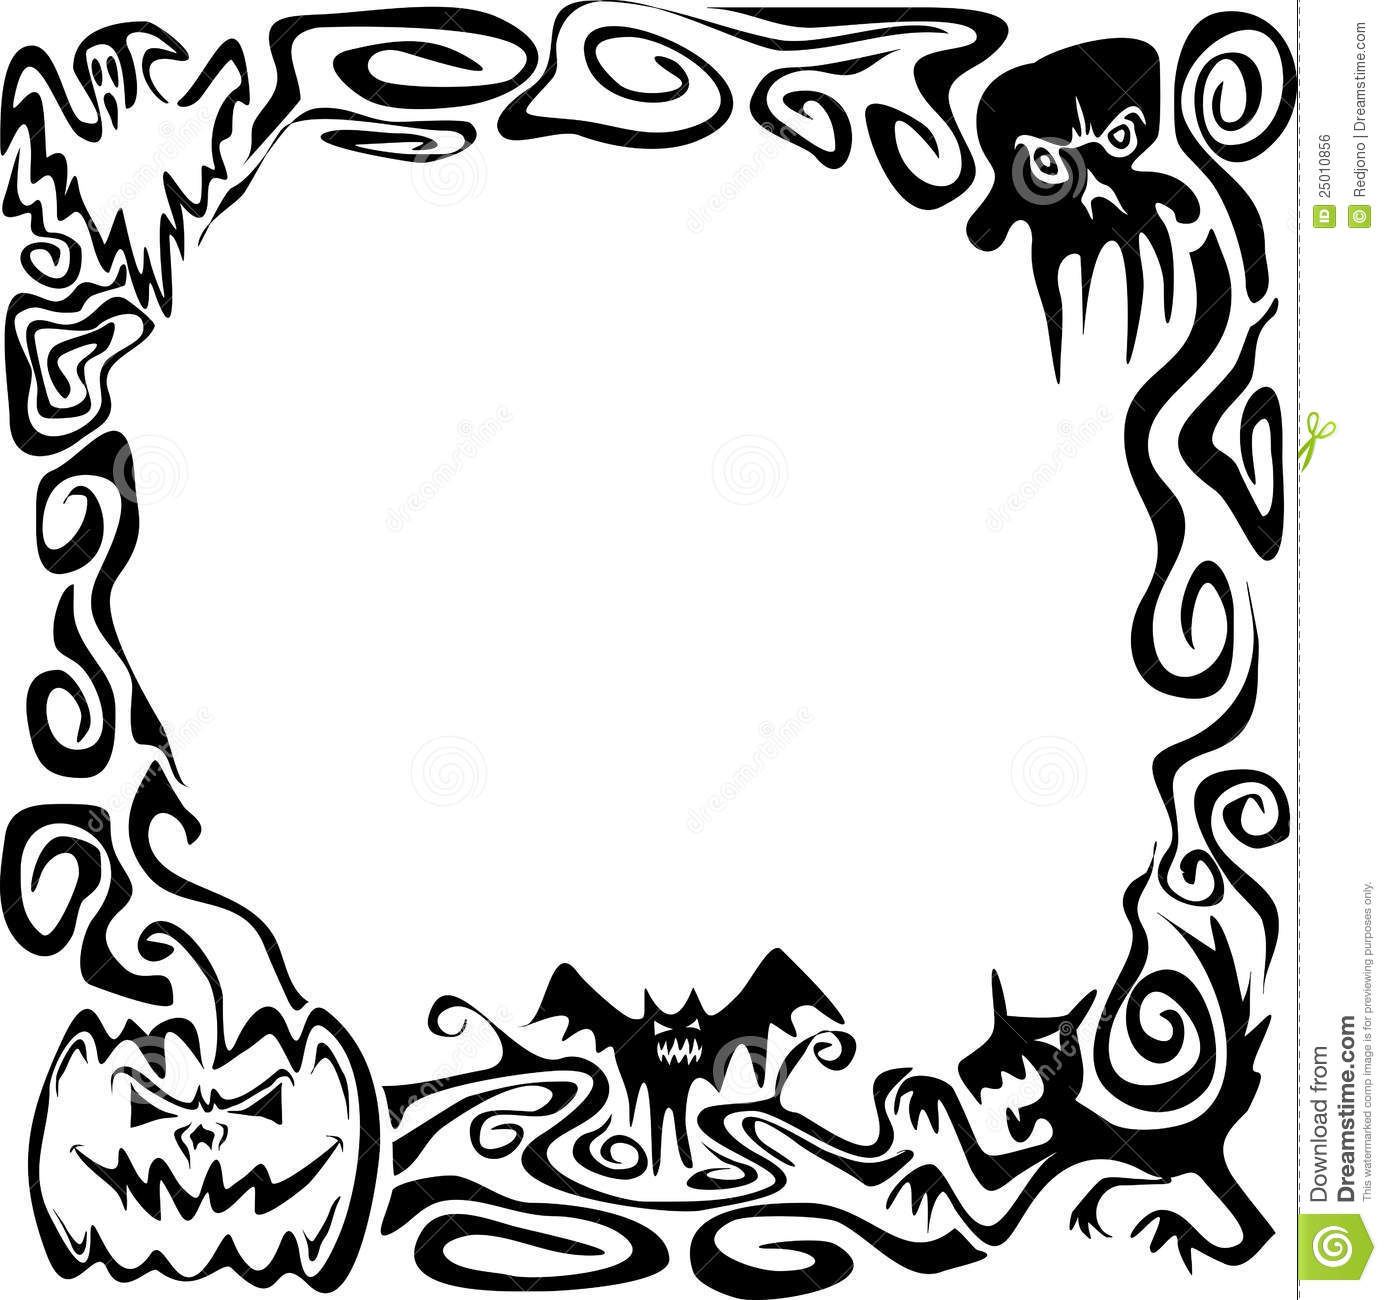 Halloween Border Black And White | Clipart Panda - Free Clipart Images